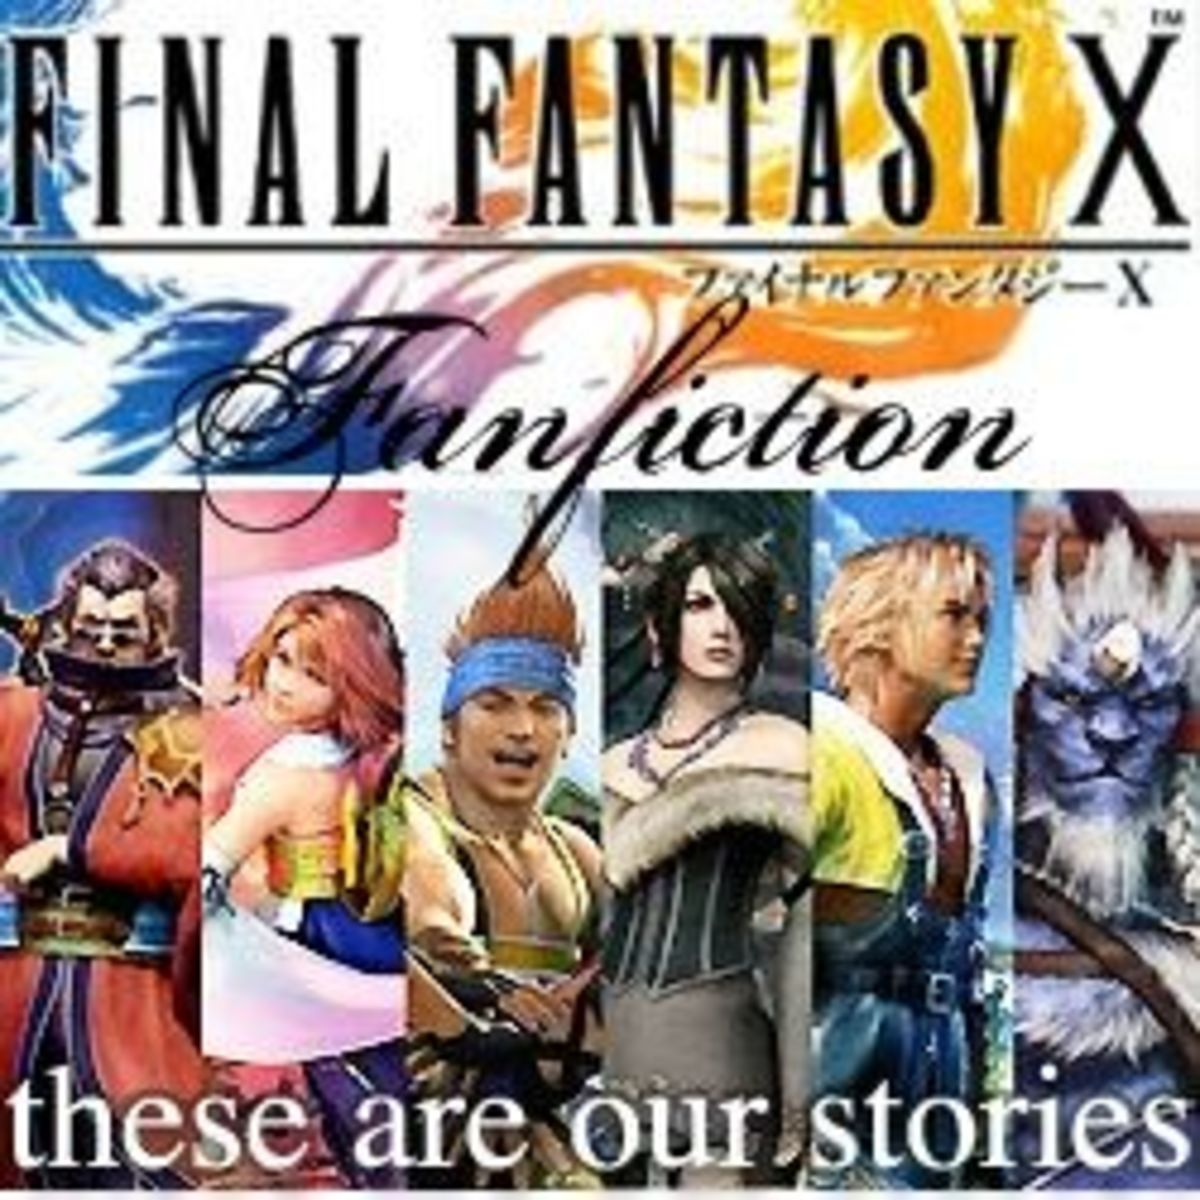 Final Fantasy X Fanfiction: A Fan's Recommendations